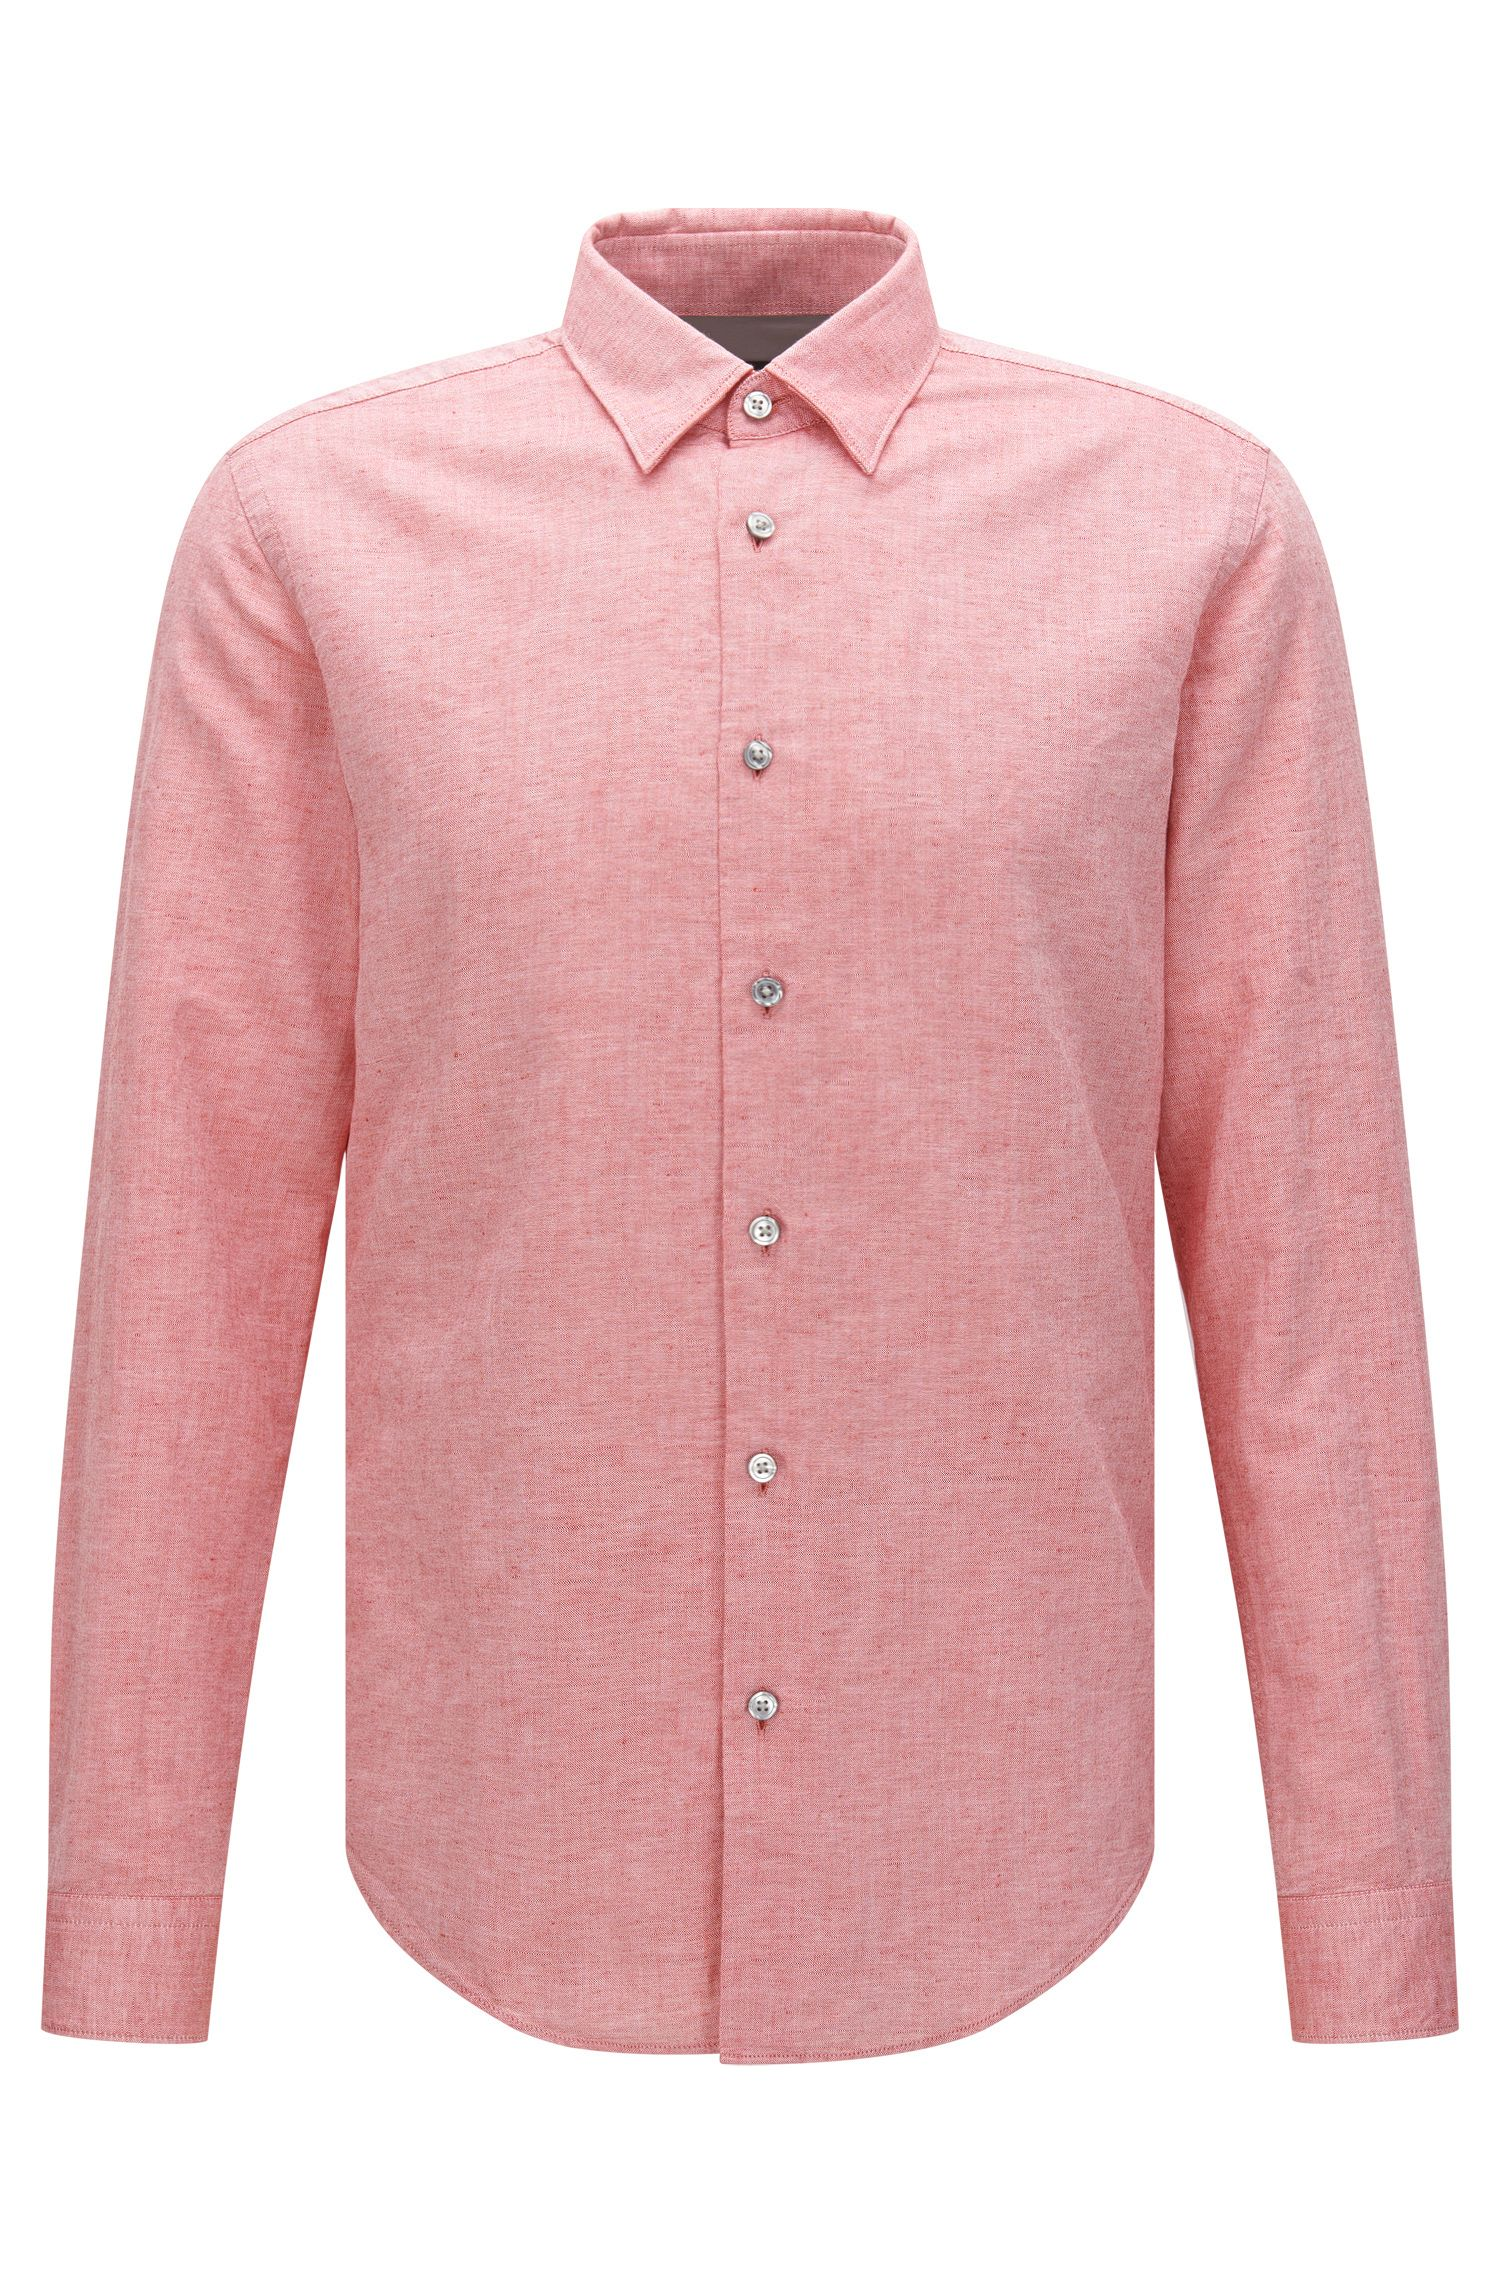 'Rodney' | Slim Fit, Cotton Linen Button Down Shirt